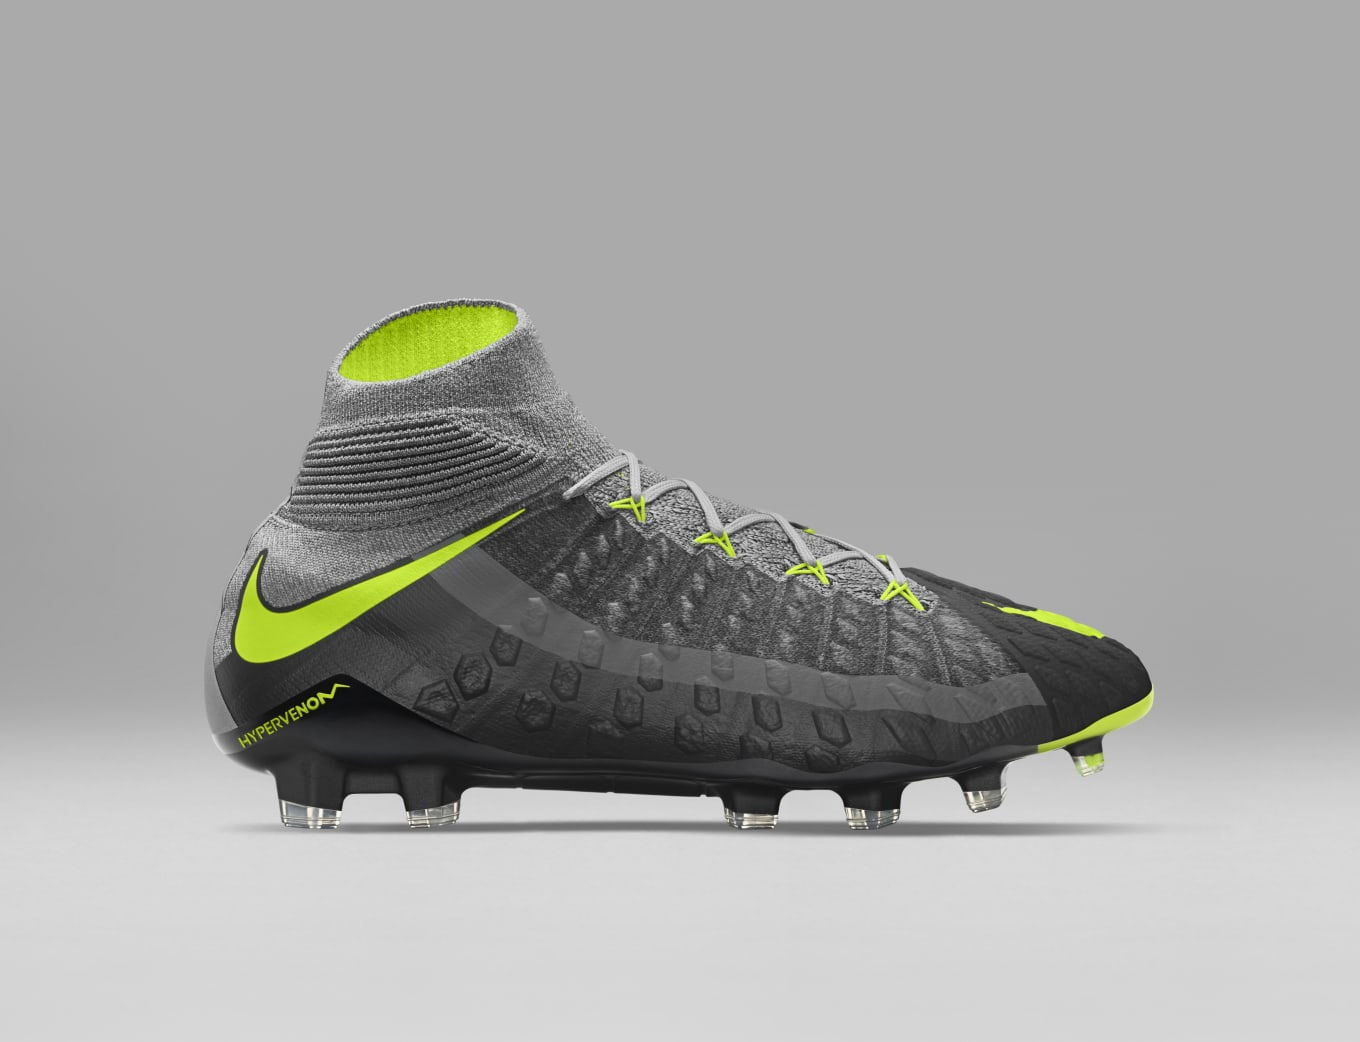 new product 98cfd 082f6 Nike Debuts Air Max-Inspired Soccer Boots. The Air Max Day celebration  continues.